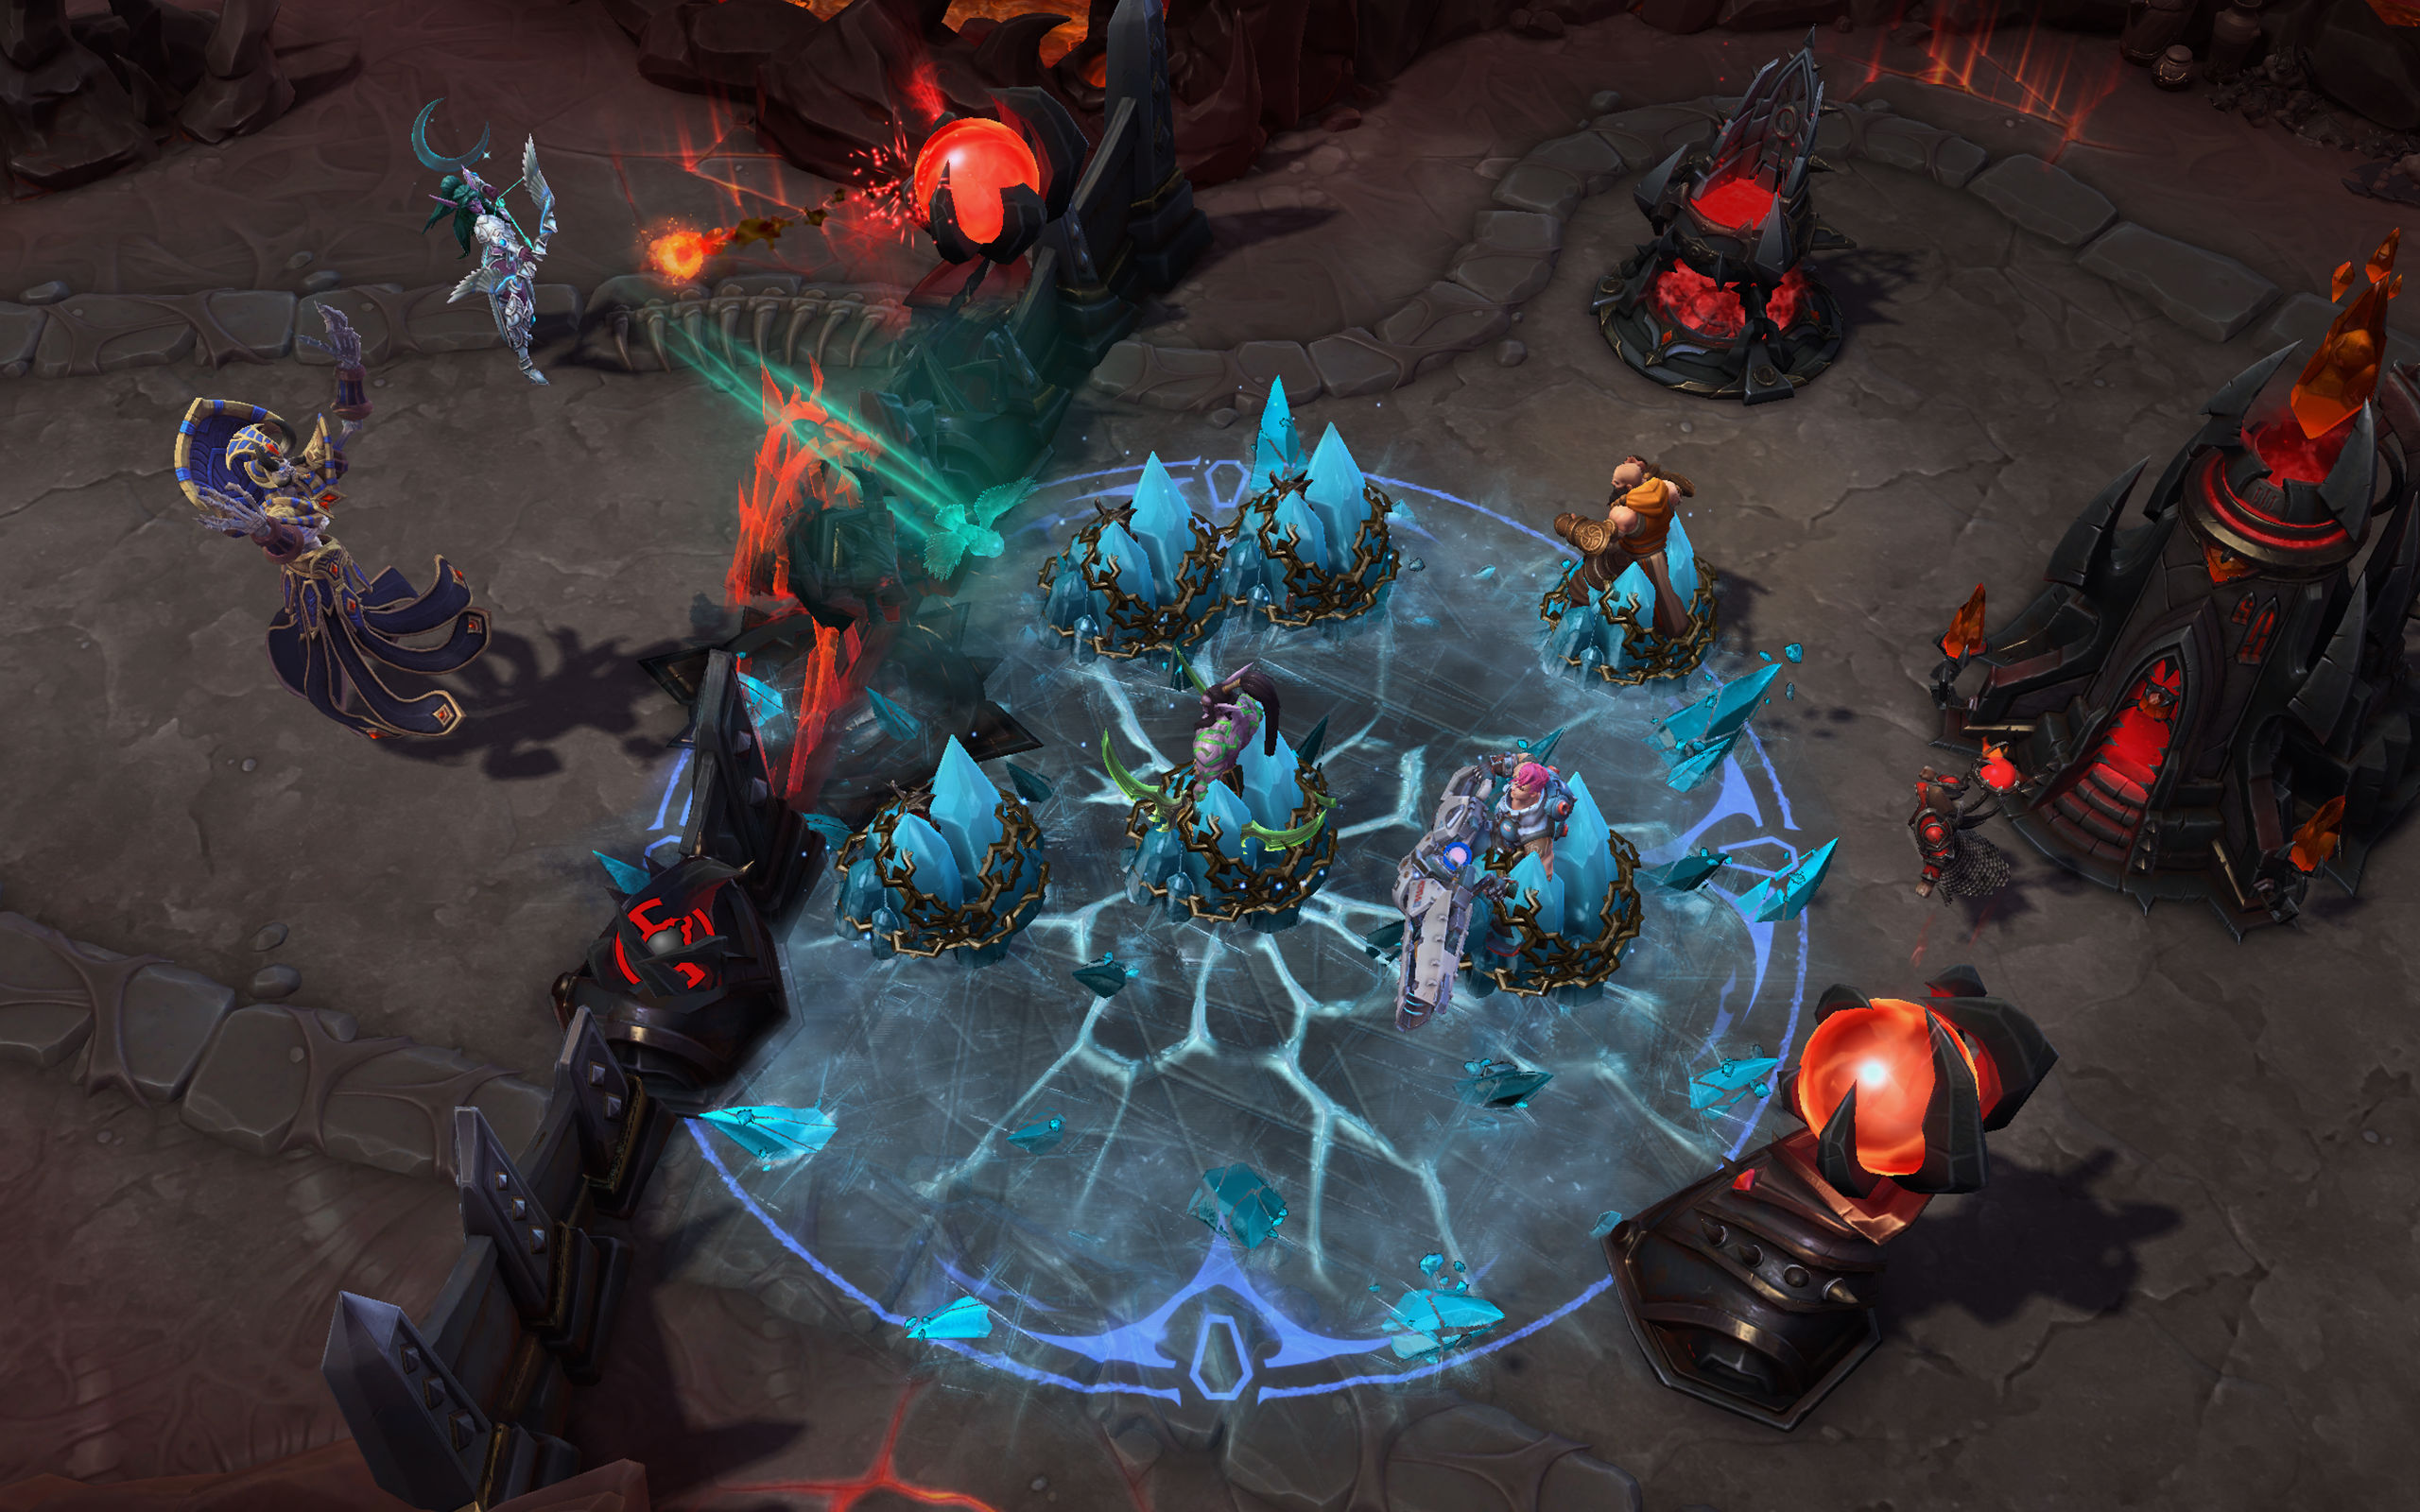 Kel'Thuzad is the first character in Heroes of the Storm that has a base level talent quest screenshot